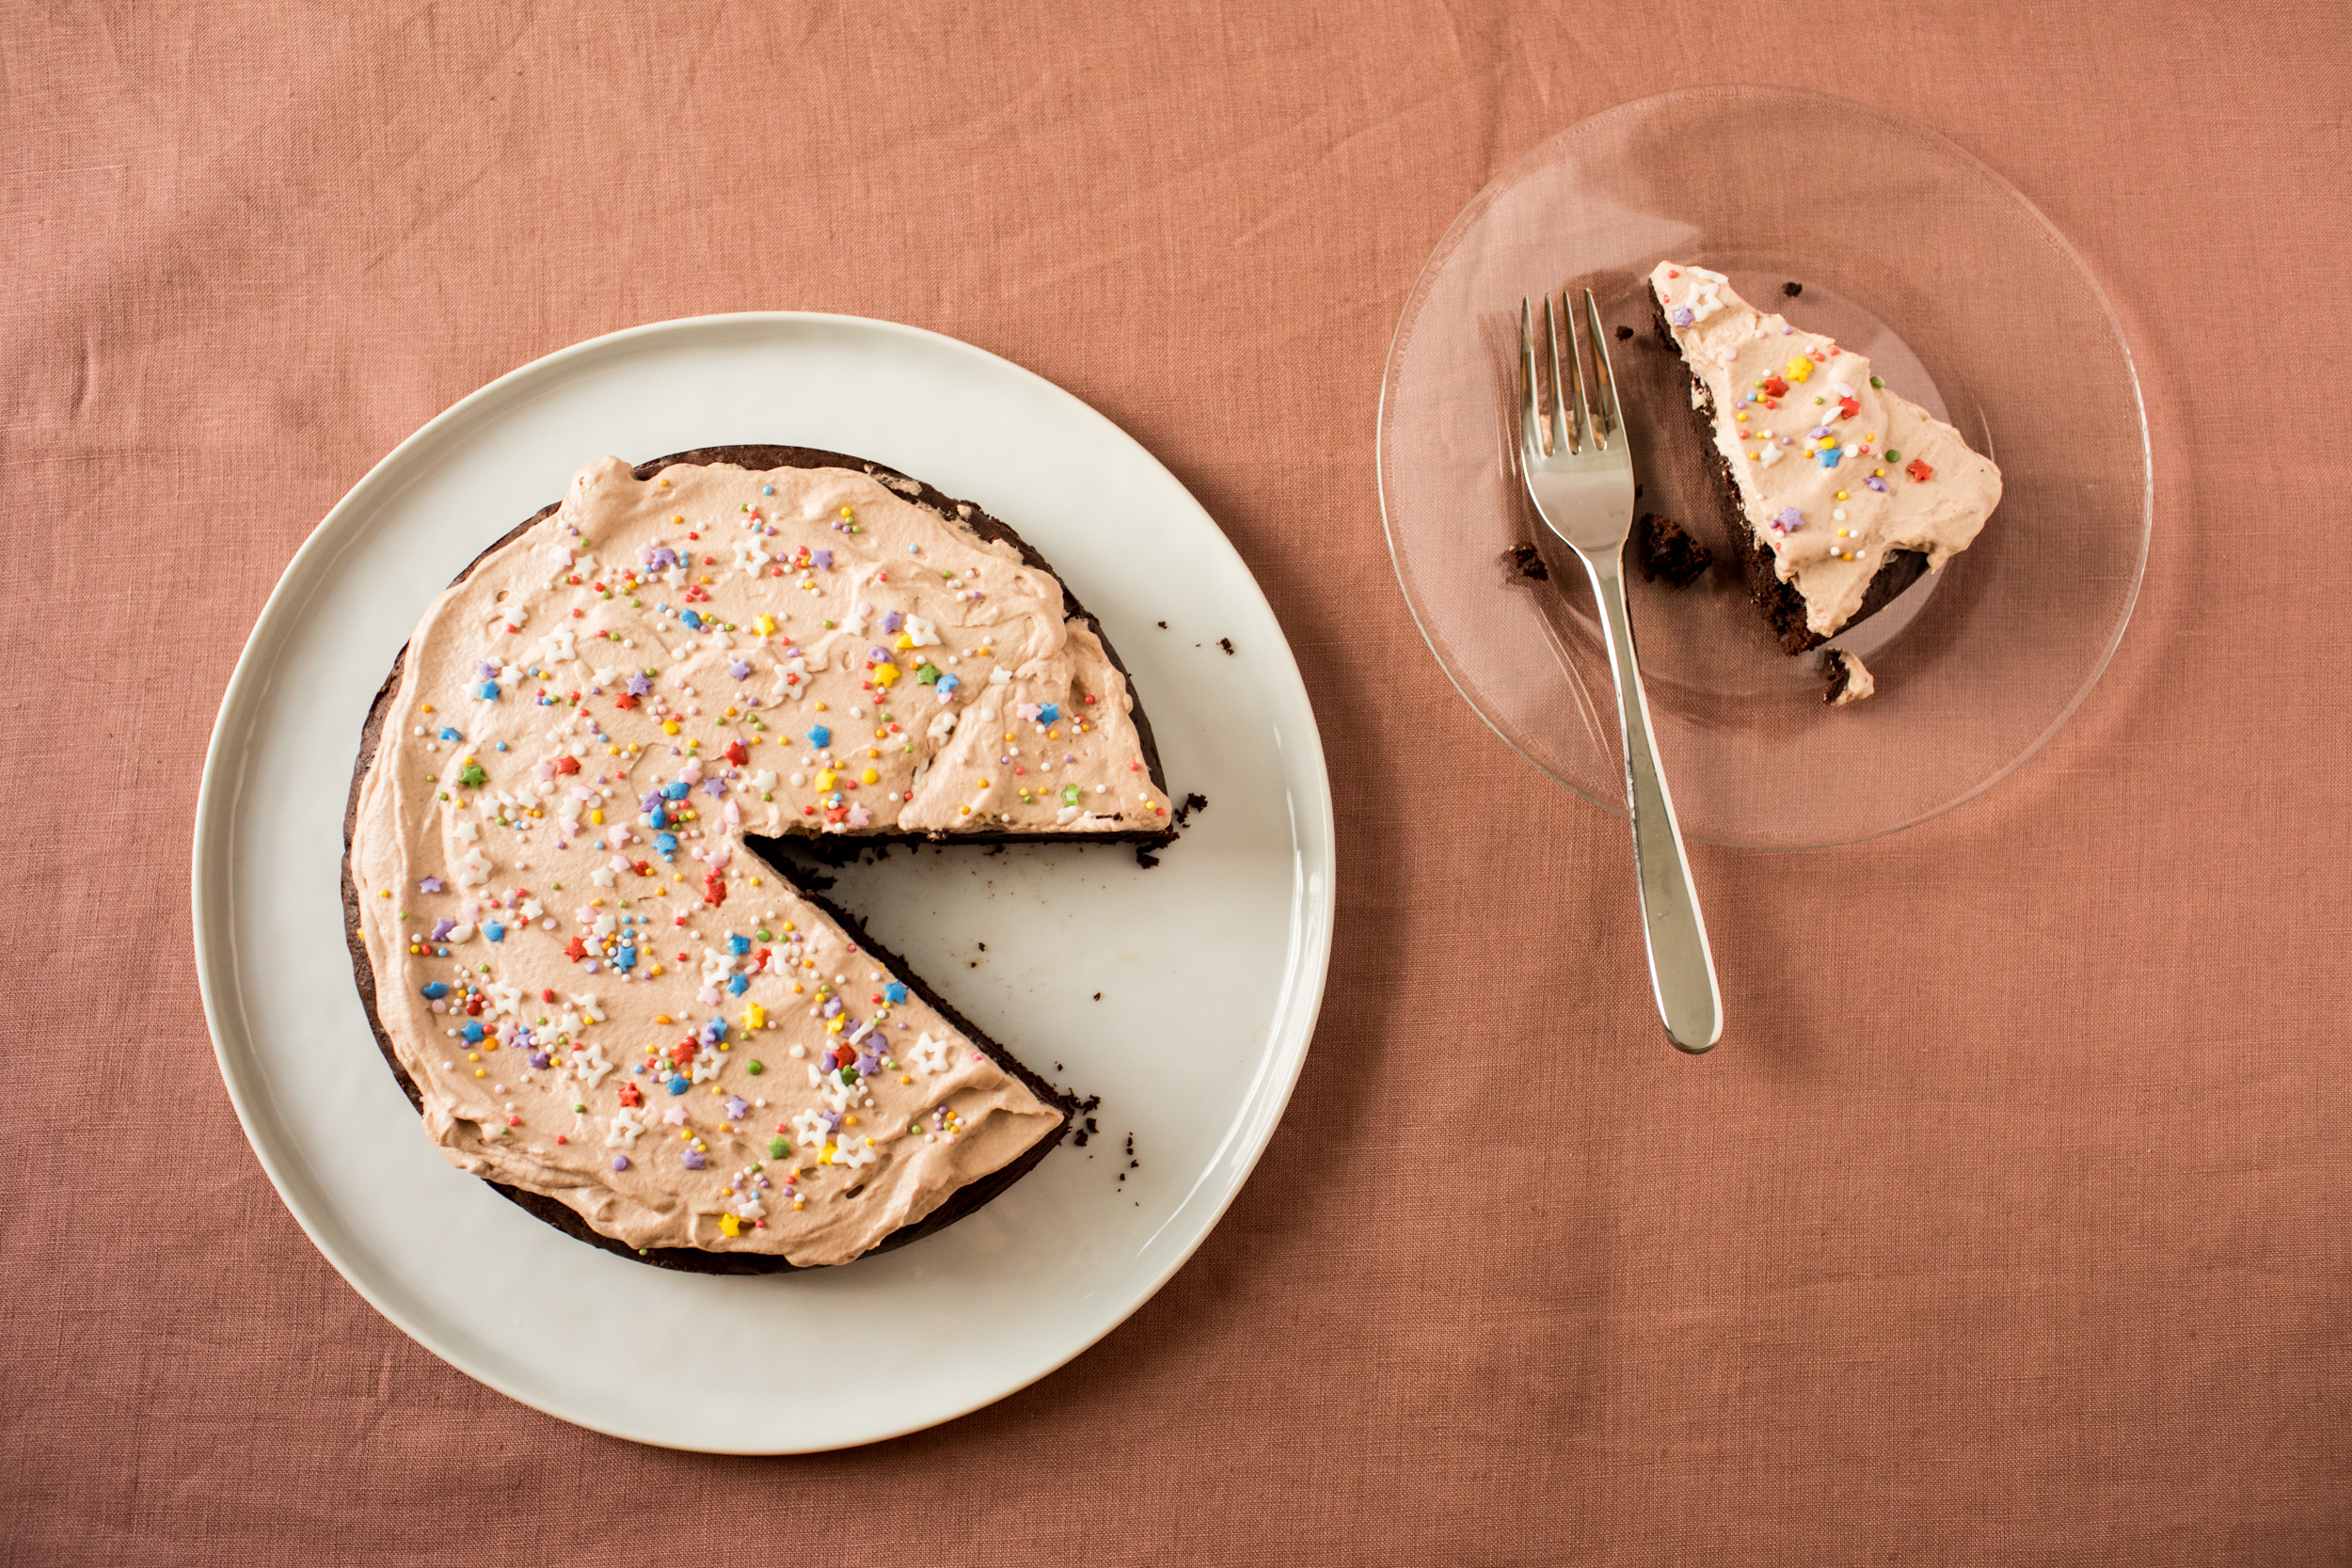 Circular chocolate cake with a light brown whipped cream and sprinkles on top, one triangle has been cut out and is on a separate plate.